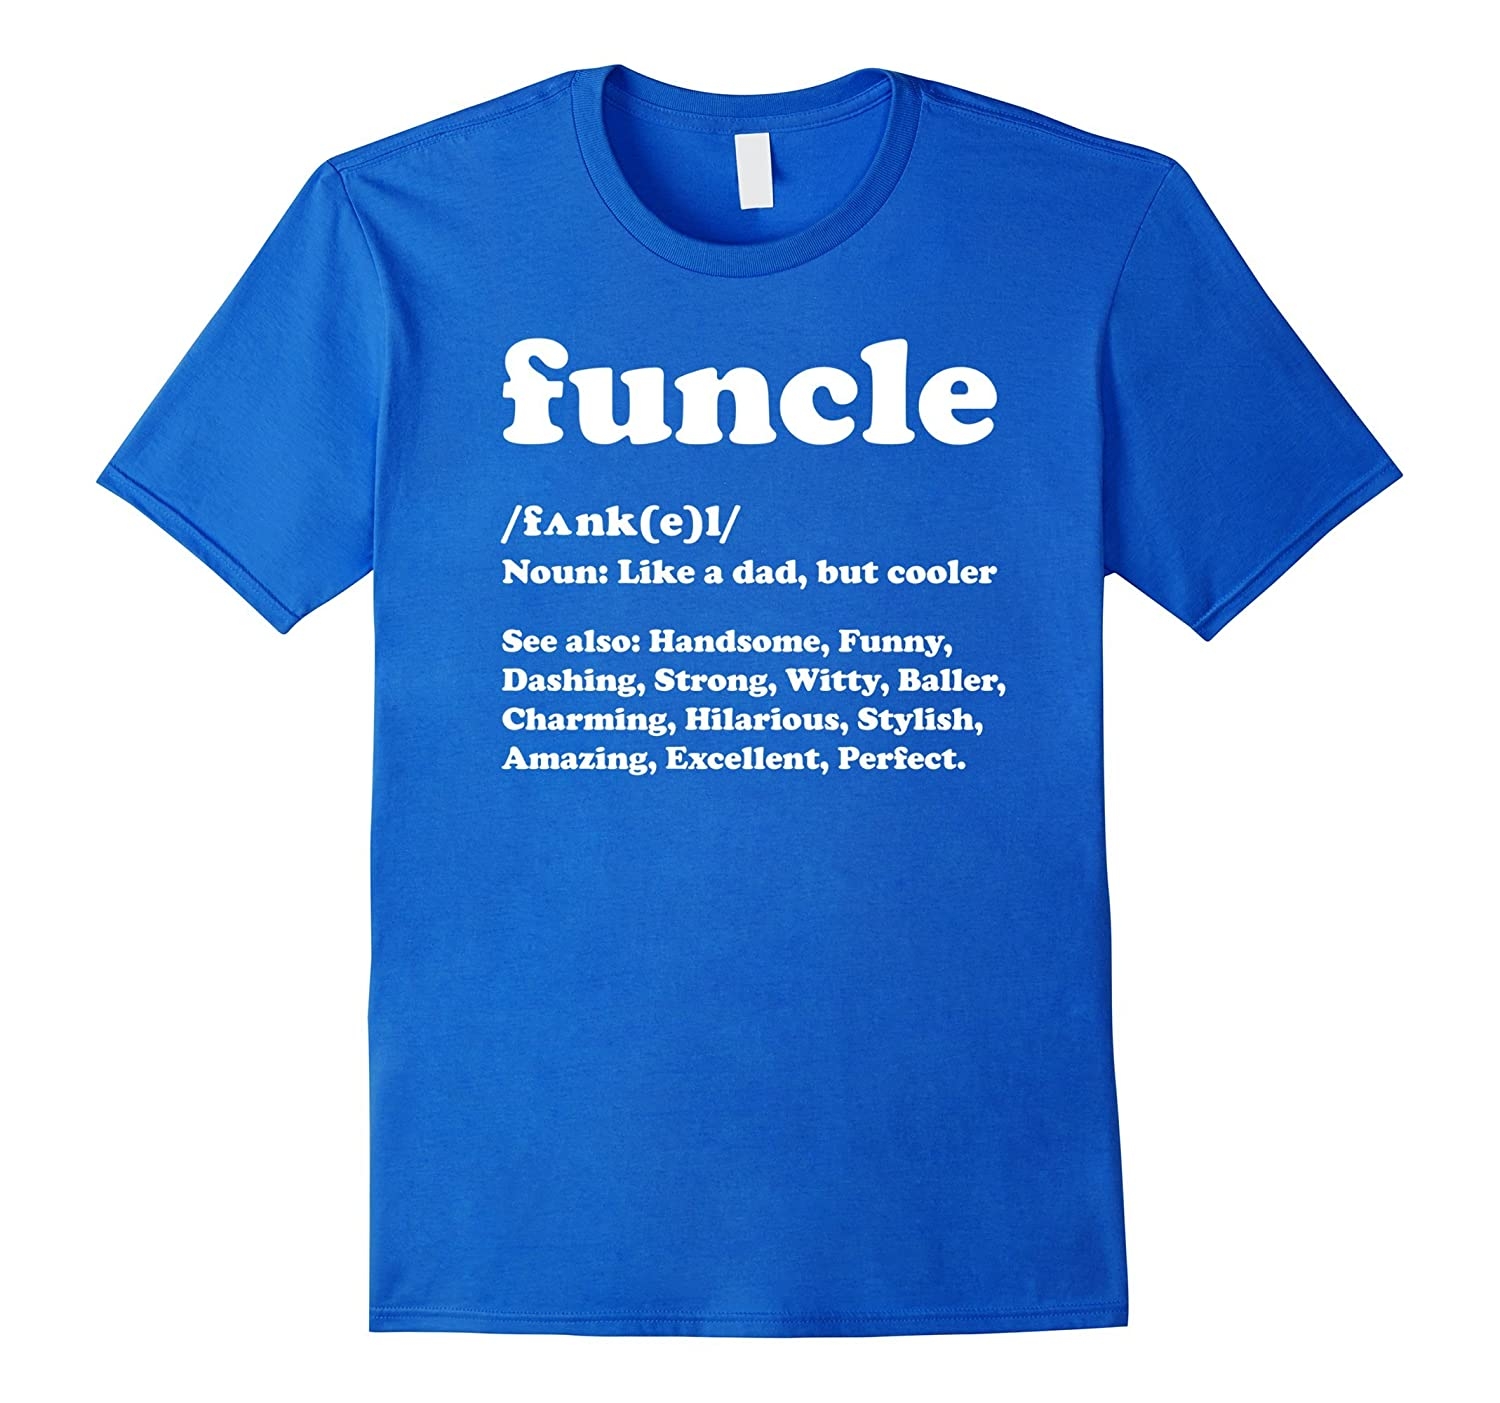 b4f8b078 Funcle T Shirt Like A Dad Only Cooler | Fun Uncle T Shirt-RT ...